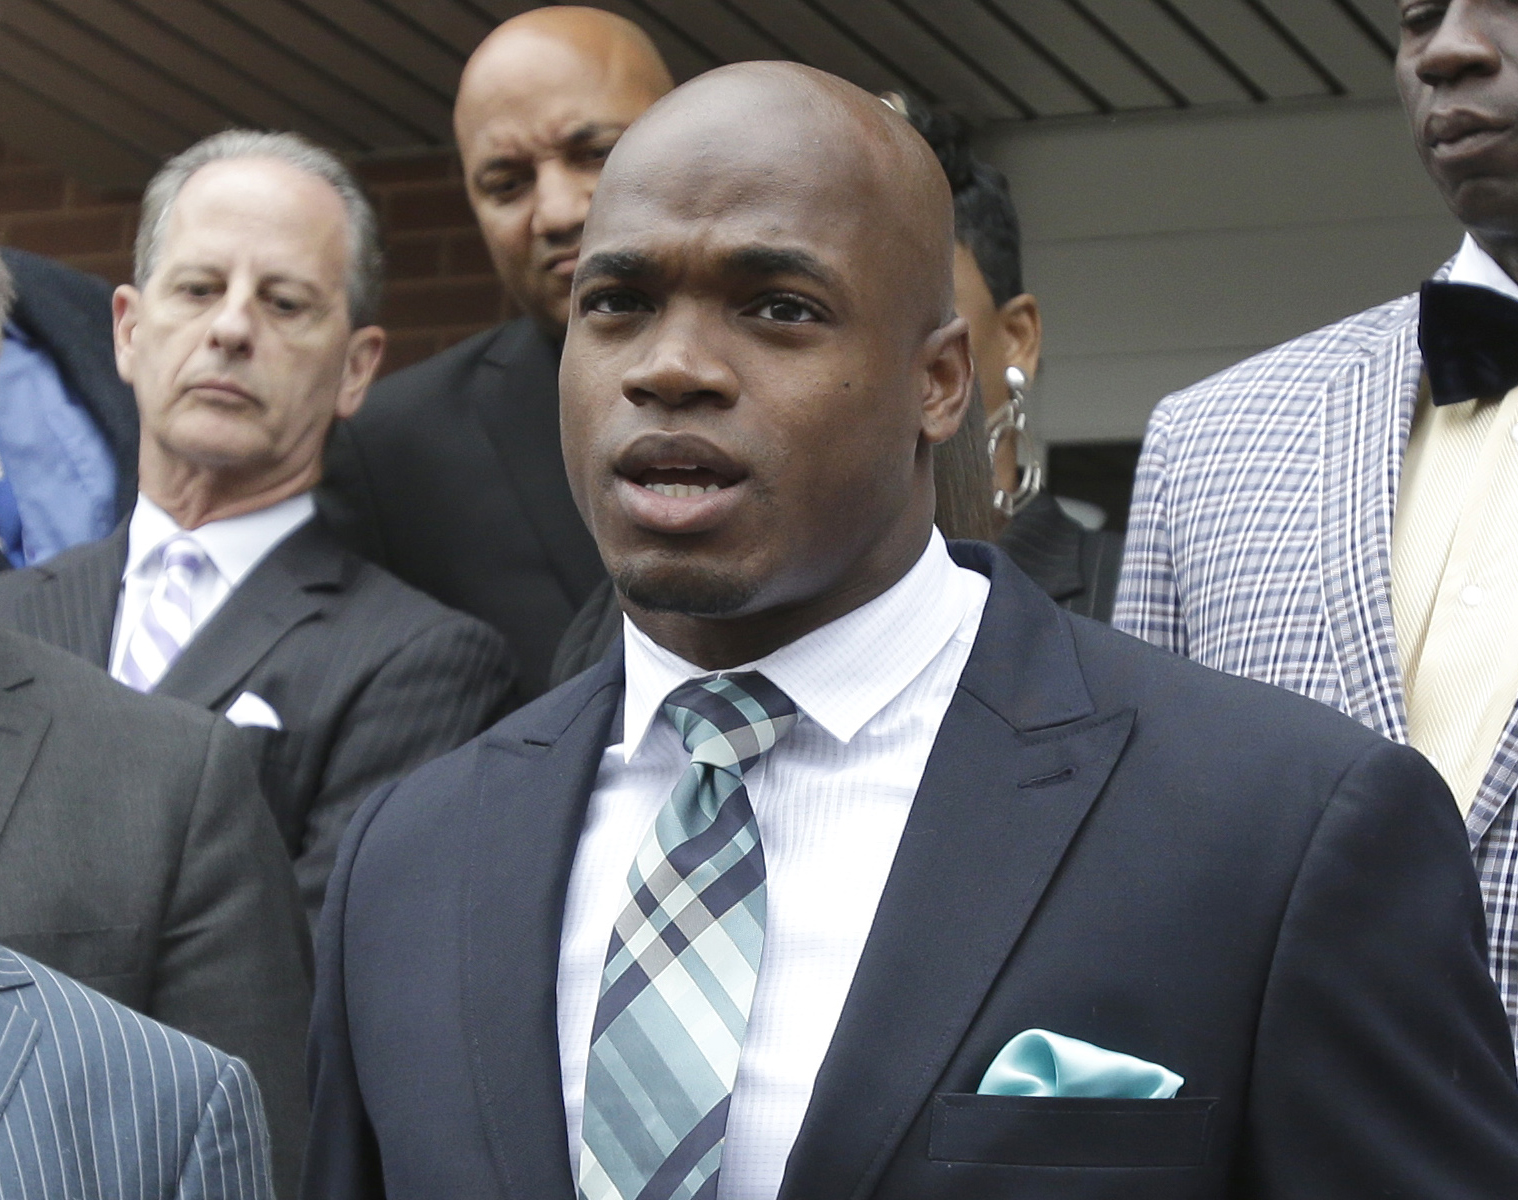 FILE - In this Nov. 4, 2014, file photo, Minnesota Vikings running back Adrian Peterson speaks to the media after pleading no contest to an assault charge in Conroe, Texas. On Friday, Dec. 12, 2014, the league-appointed arbitrator for Peterson's appeal af